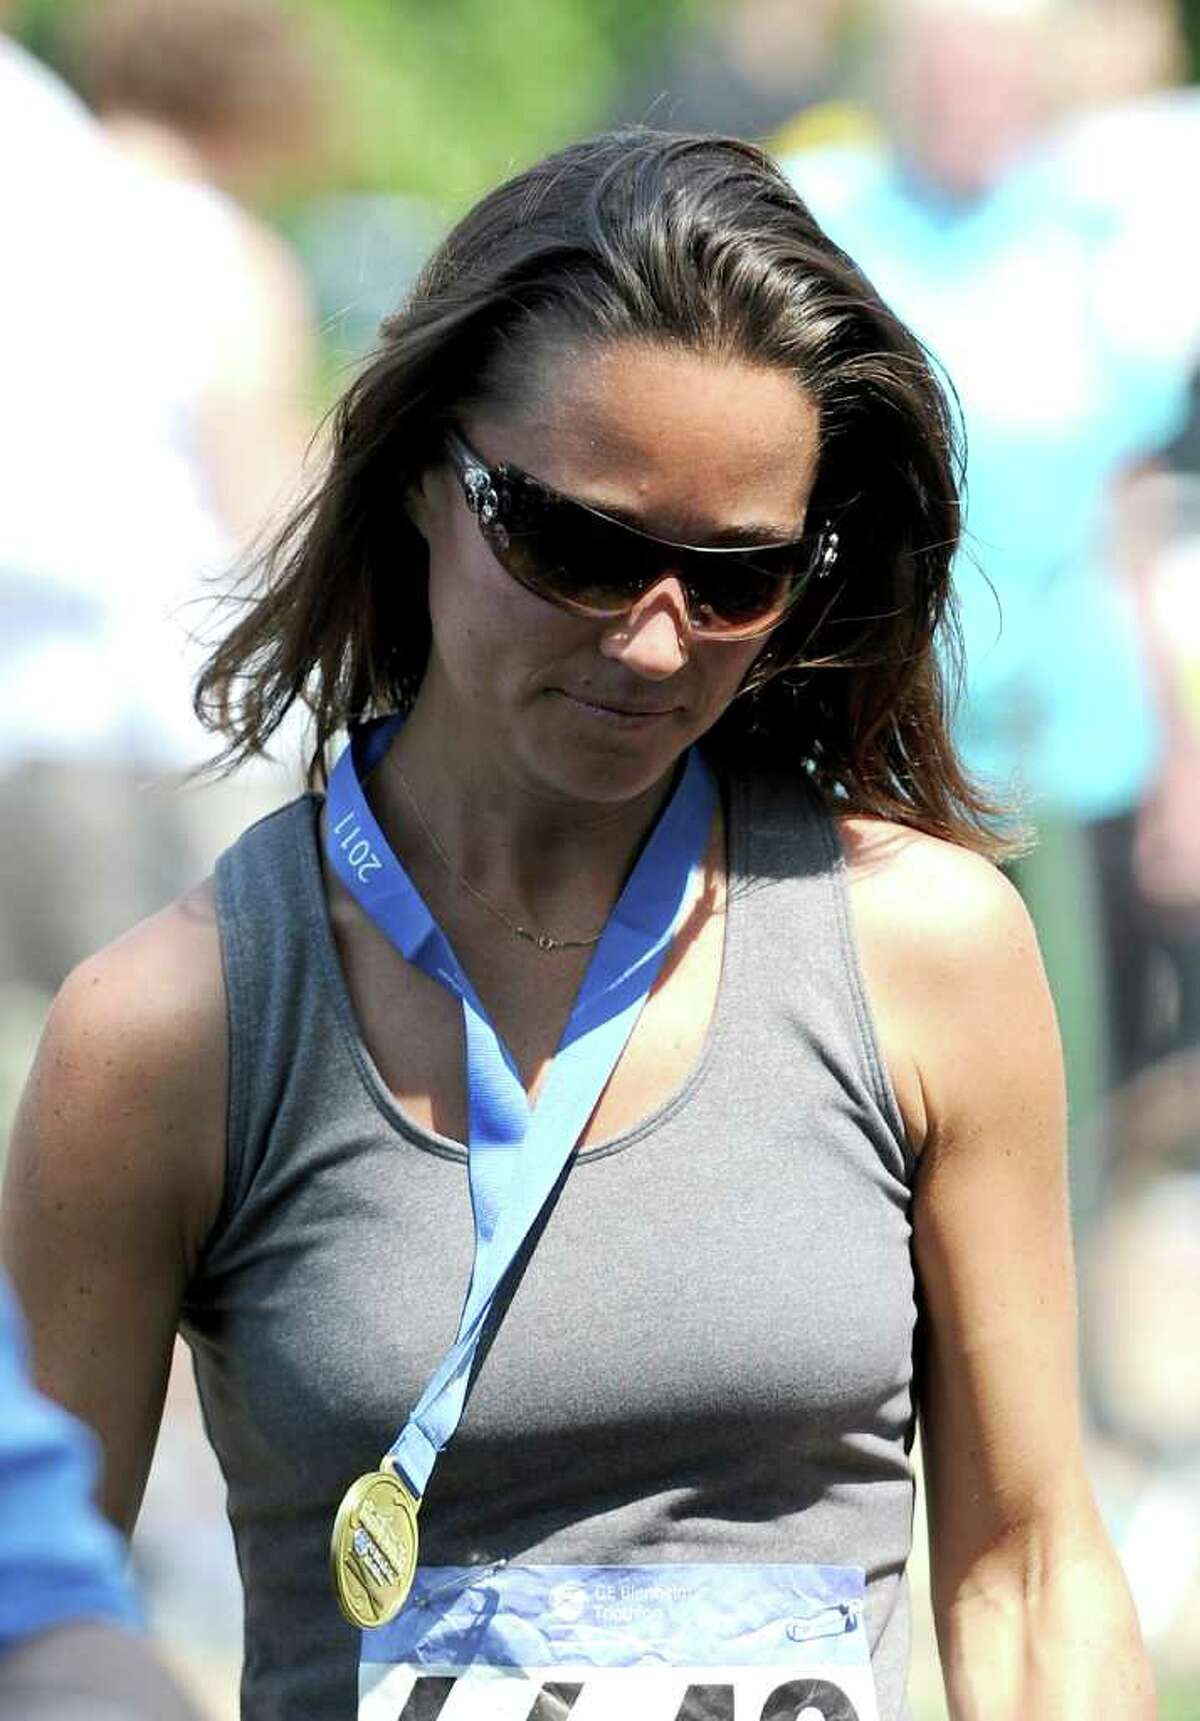 WOODSTOCK, ENGLAND - JUNE 04: Pippa Middleton looks on after collecting her finisher's medal during the GE Blenheim Triathlon at Blenheim Palace on June 4, 2011 in Woodstock, England. (Photo by Chris Brunskill/Getty Images)